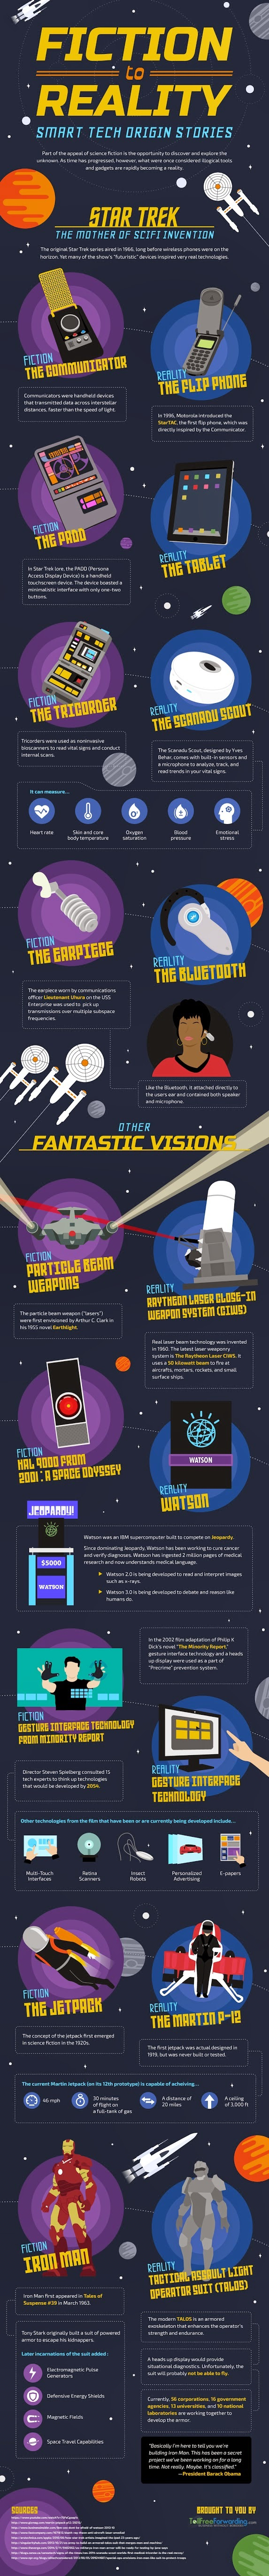 Image of Science Fiction to Reality: Where Does Our Tech Come From? - An Infographic